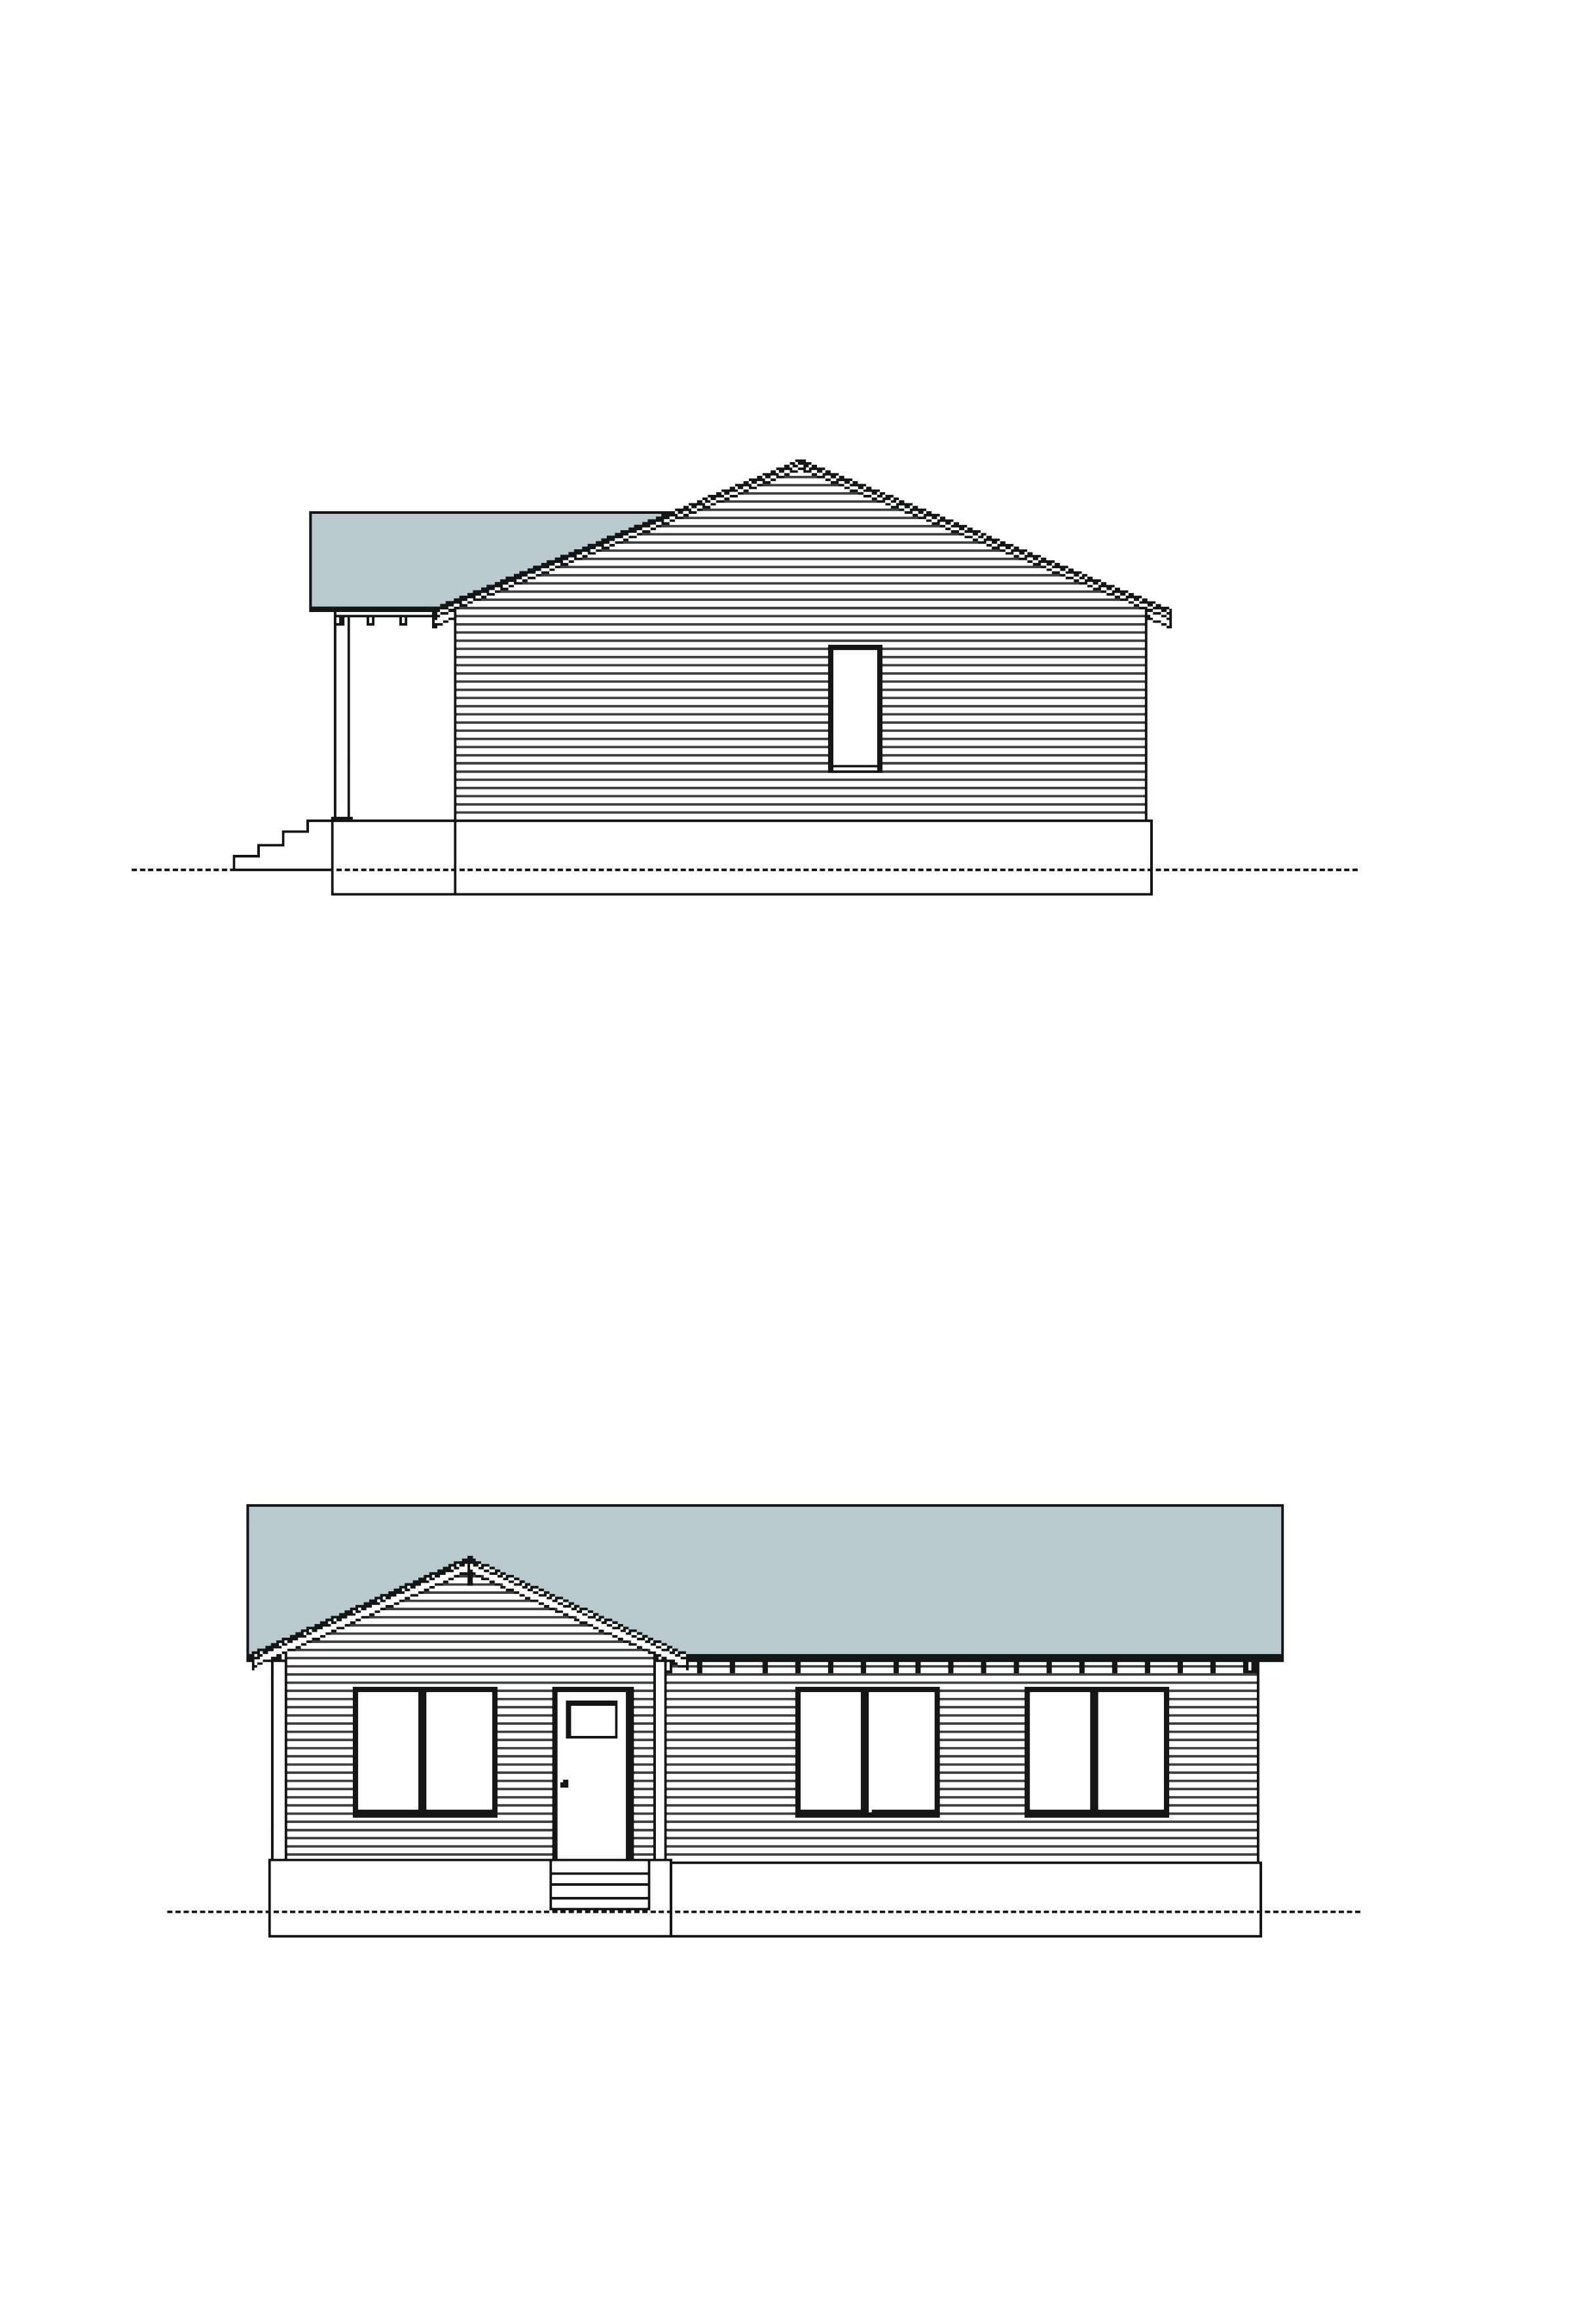 Picture of Exterior Elevations